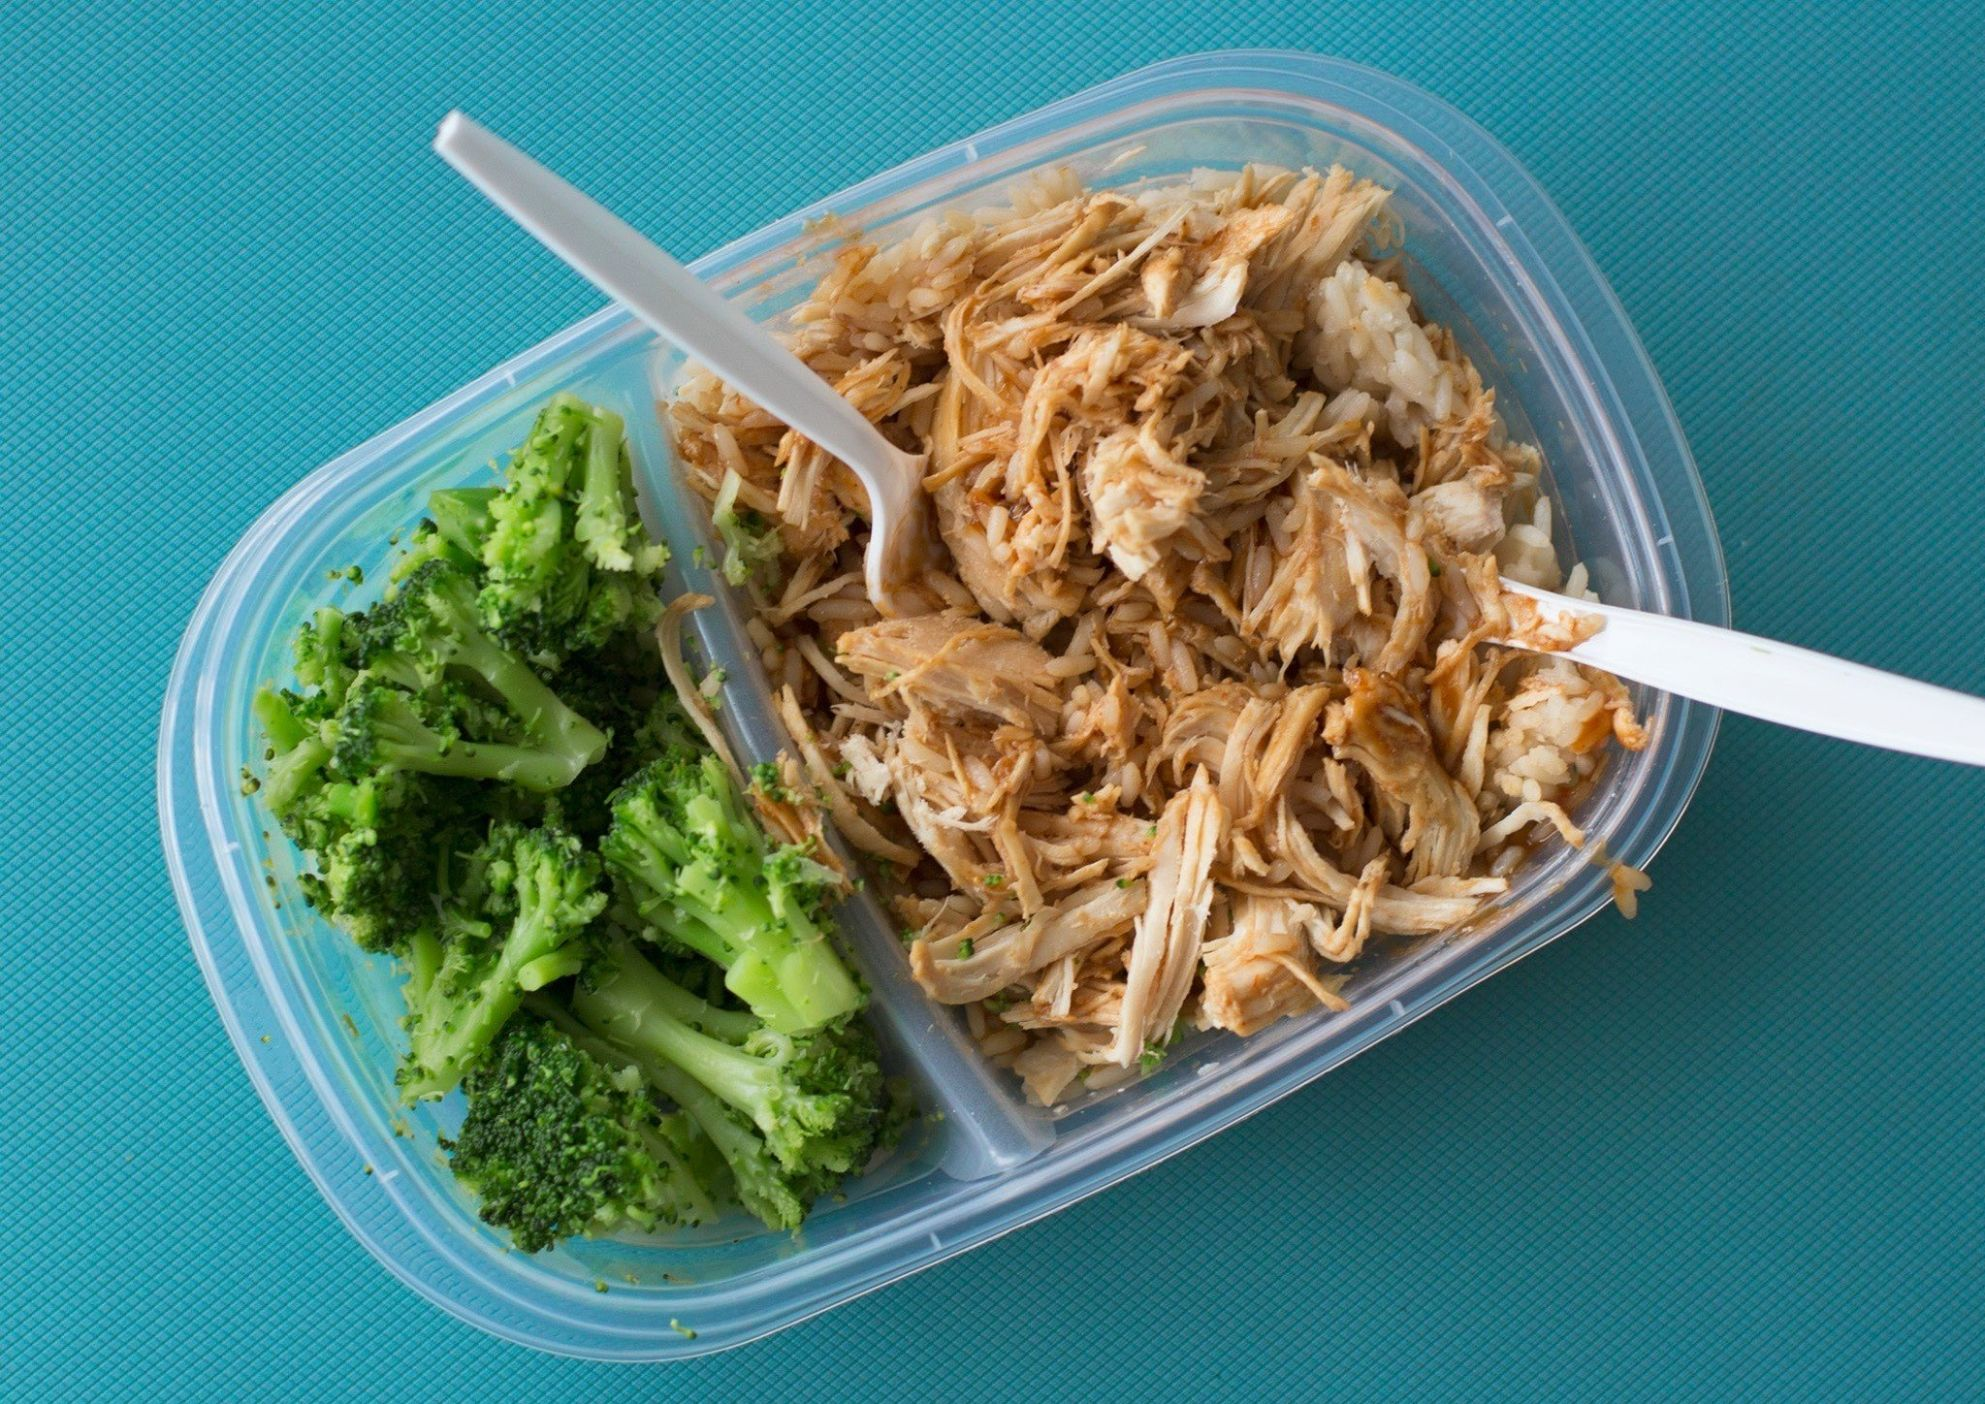 Meal Prep for Weight Loss: Templates, Recipes and More